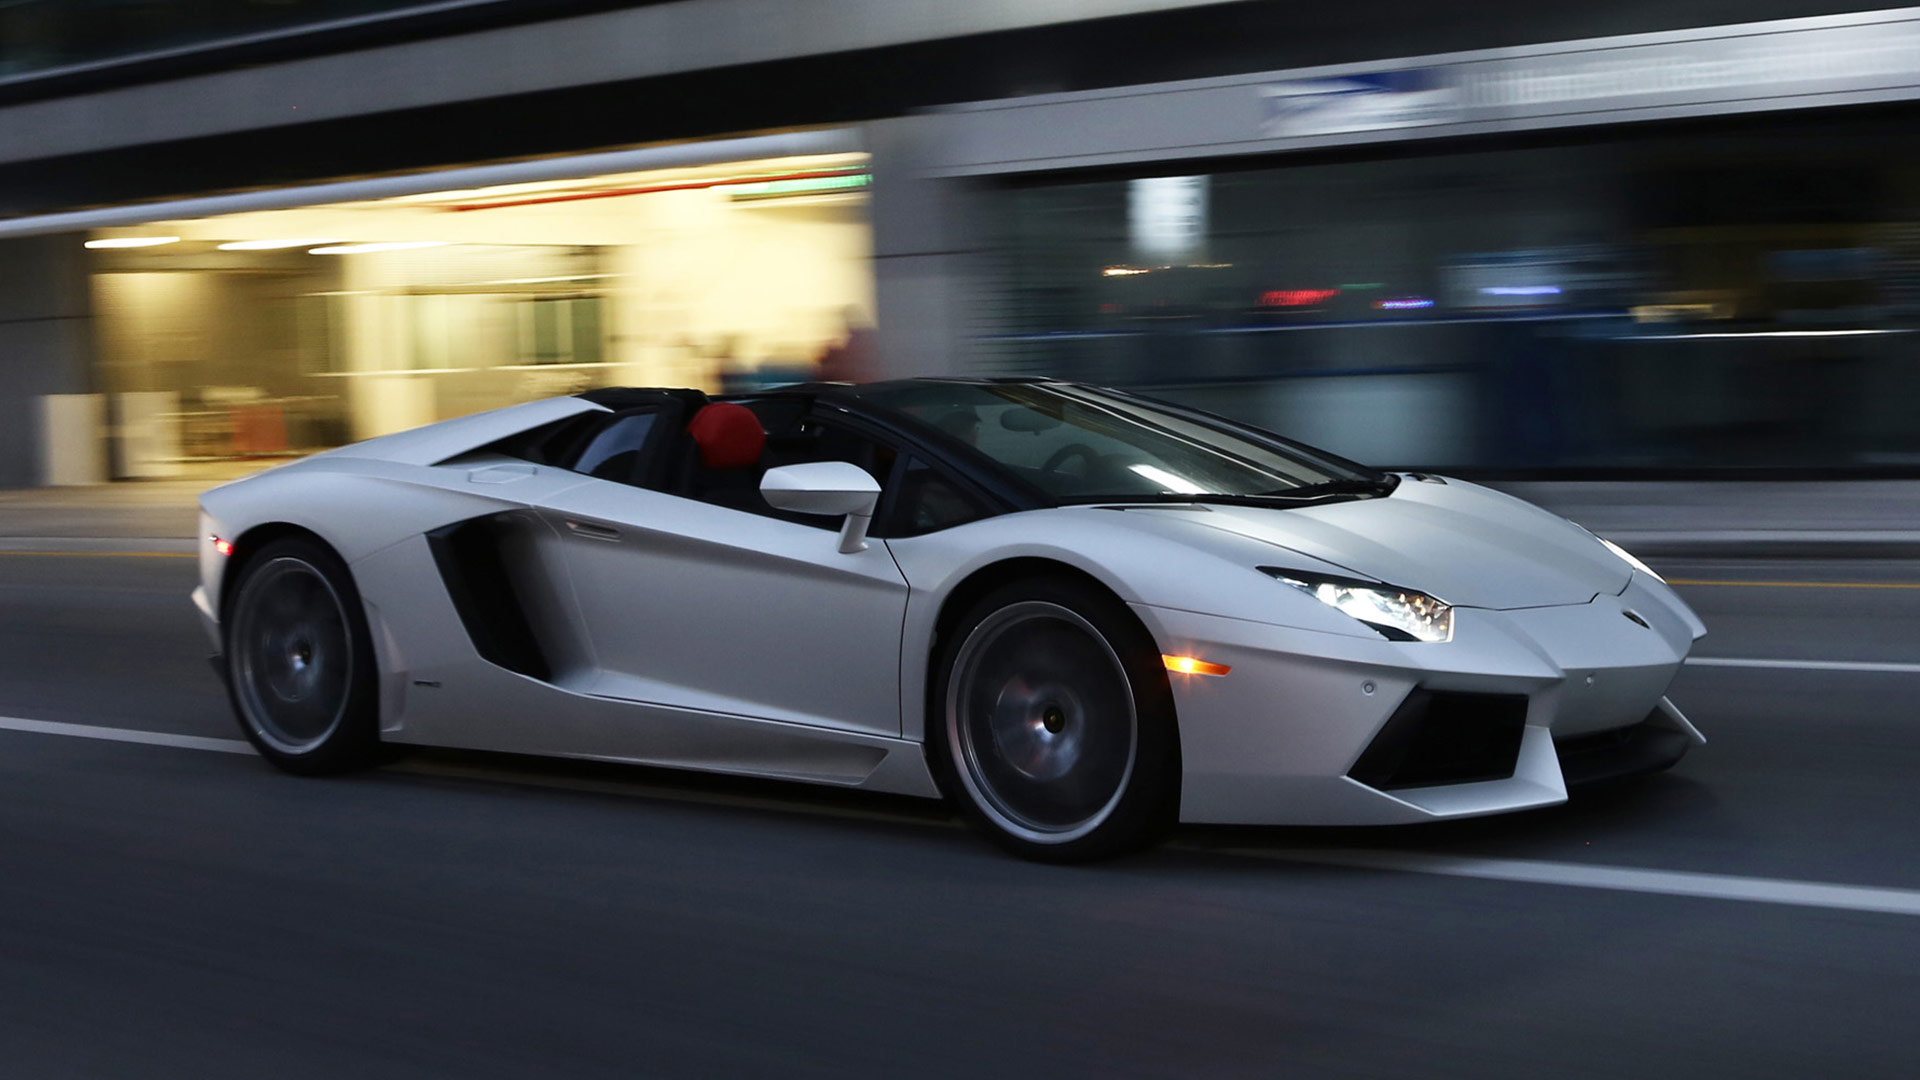 lamborghini aventador lp 700-4 roadster - review and photos